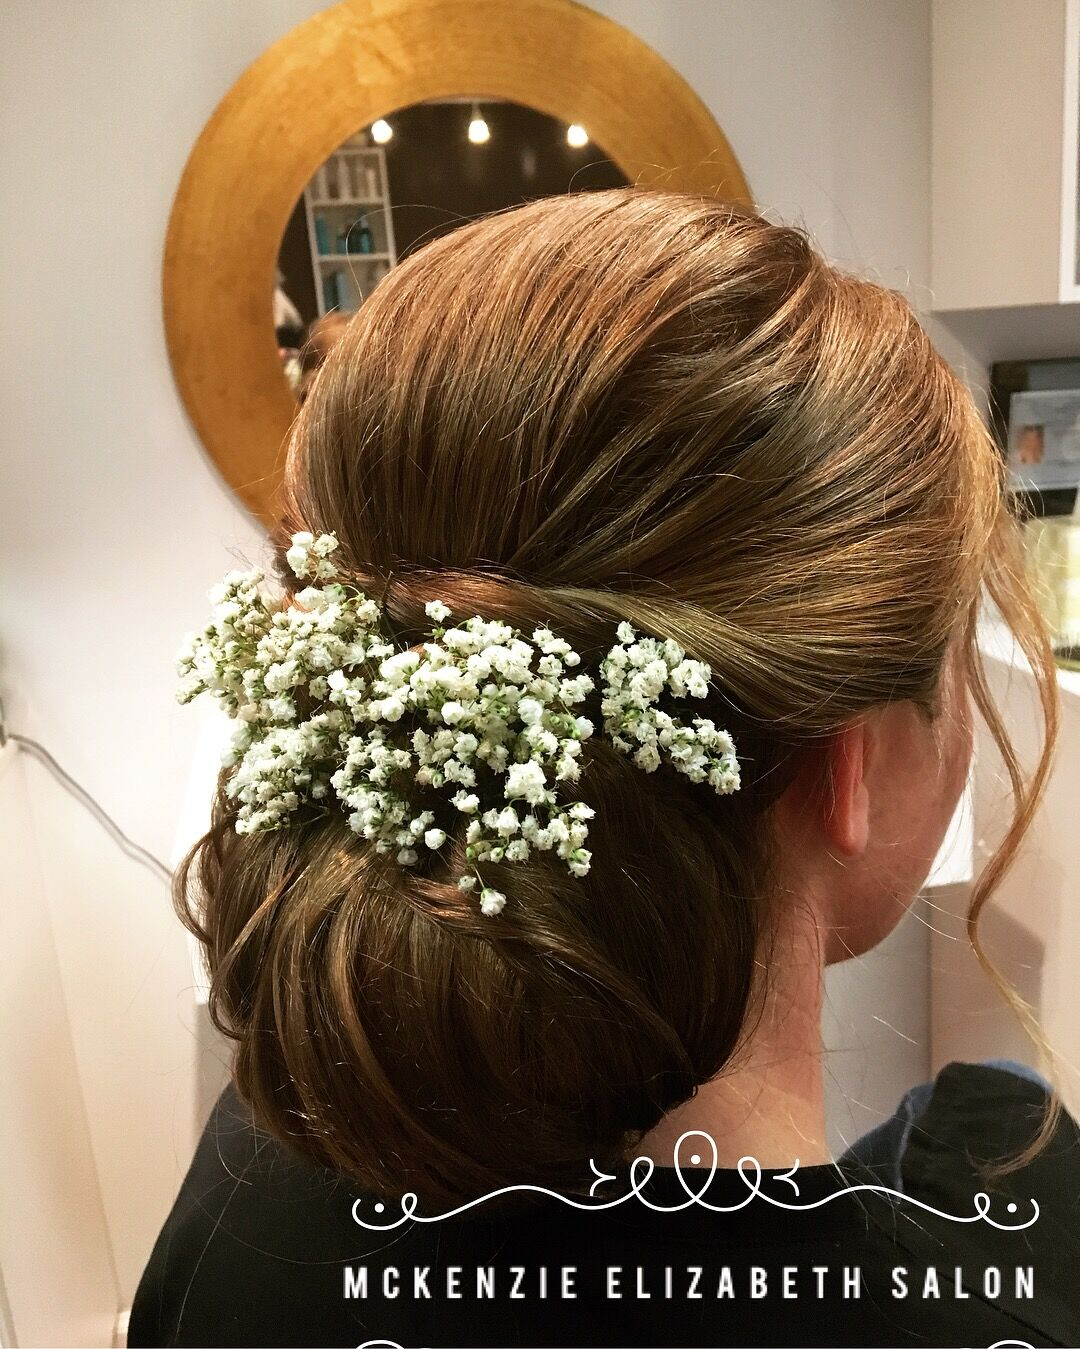 beauty salons in utica, ny - the knot